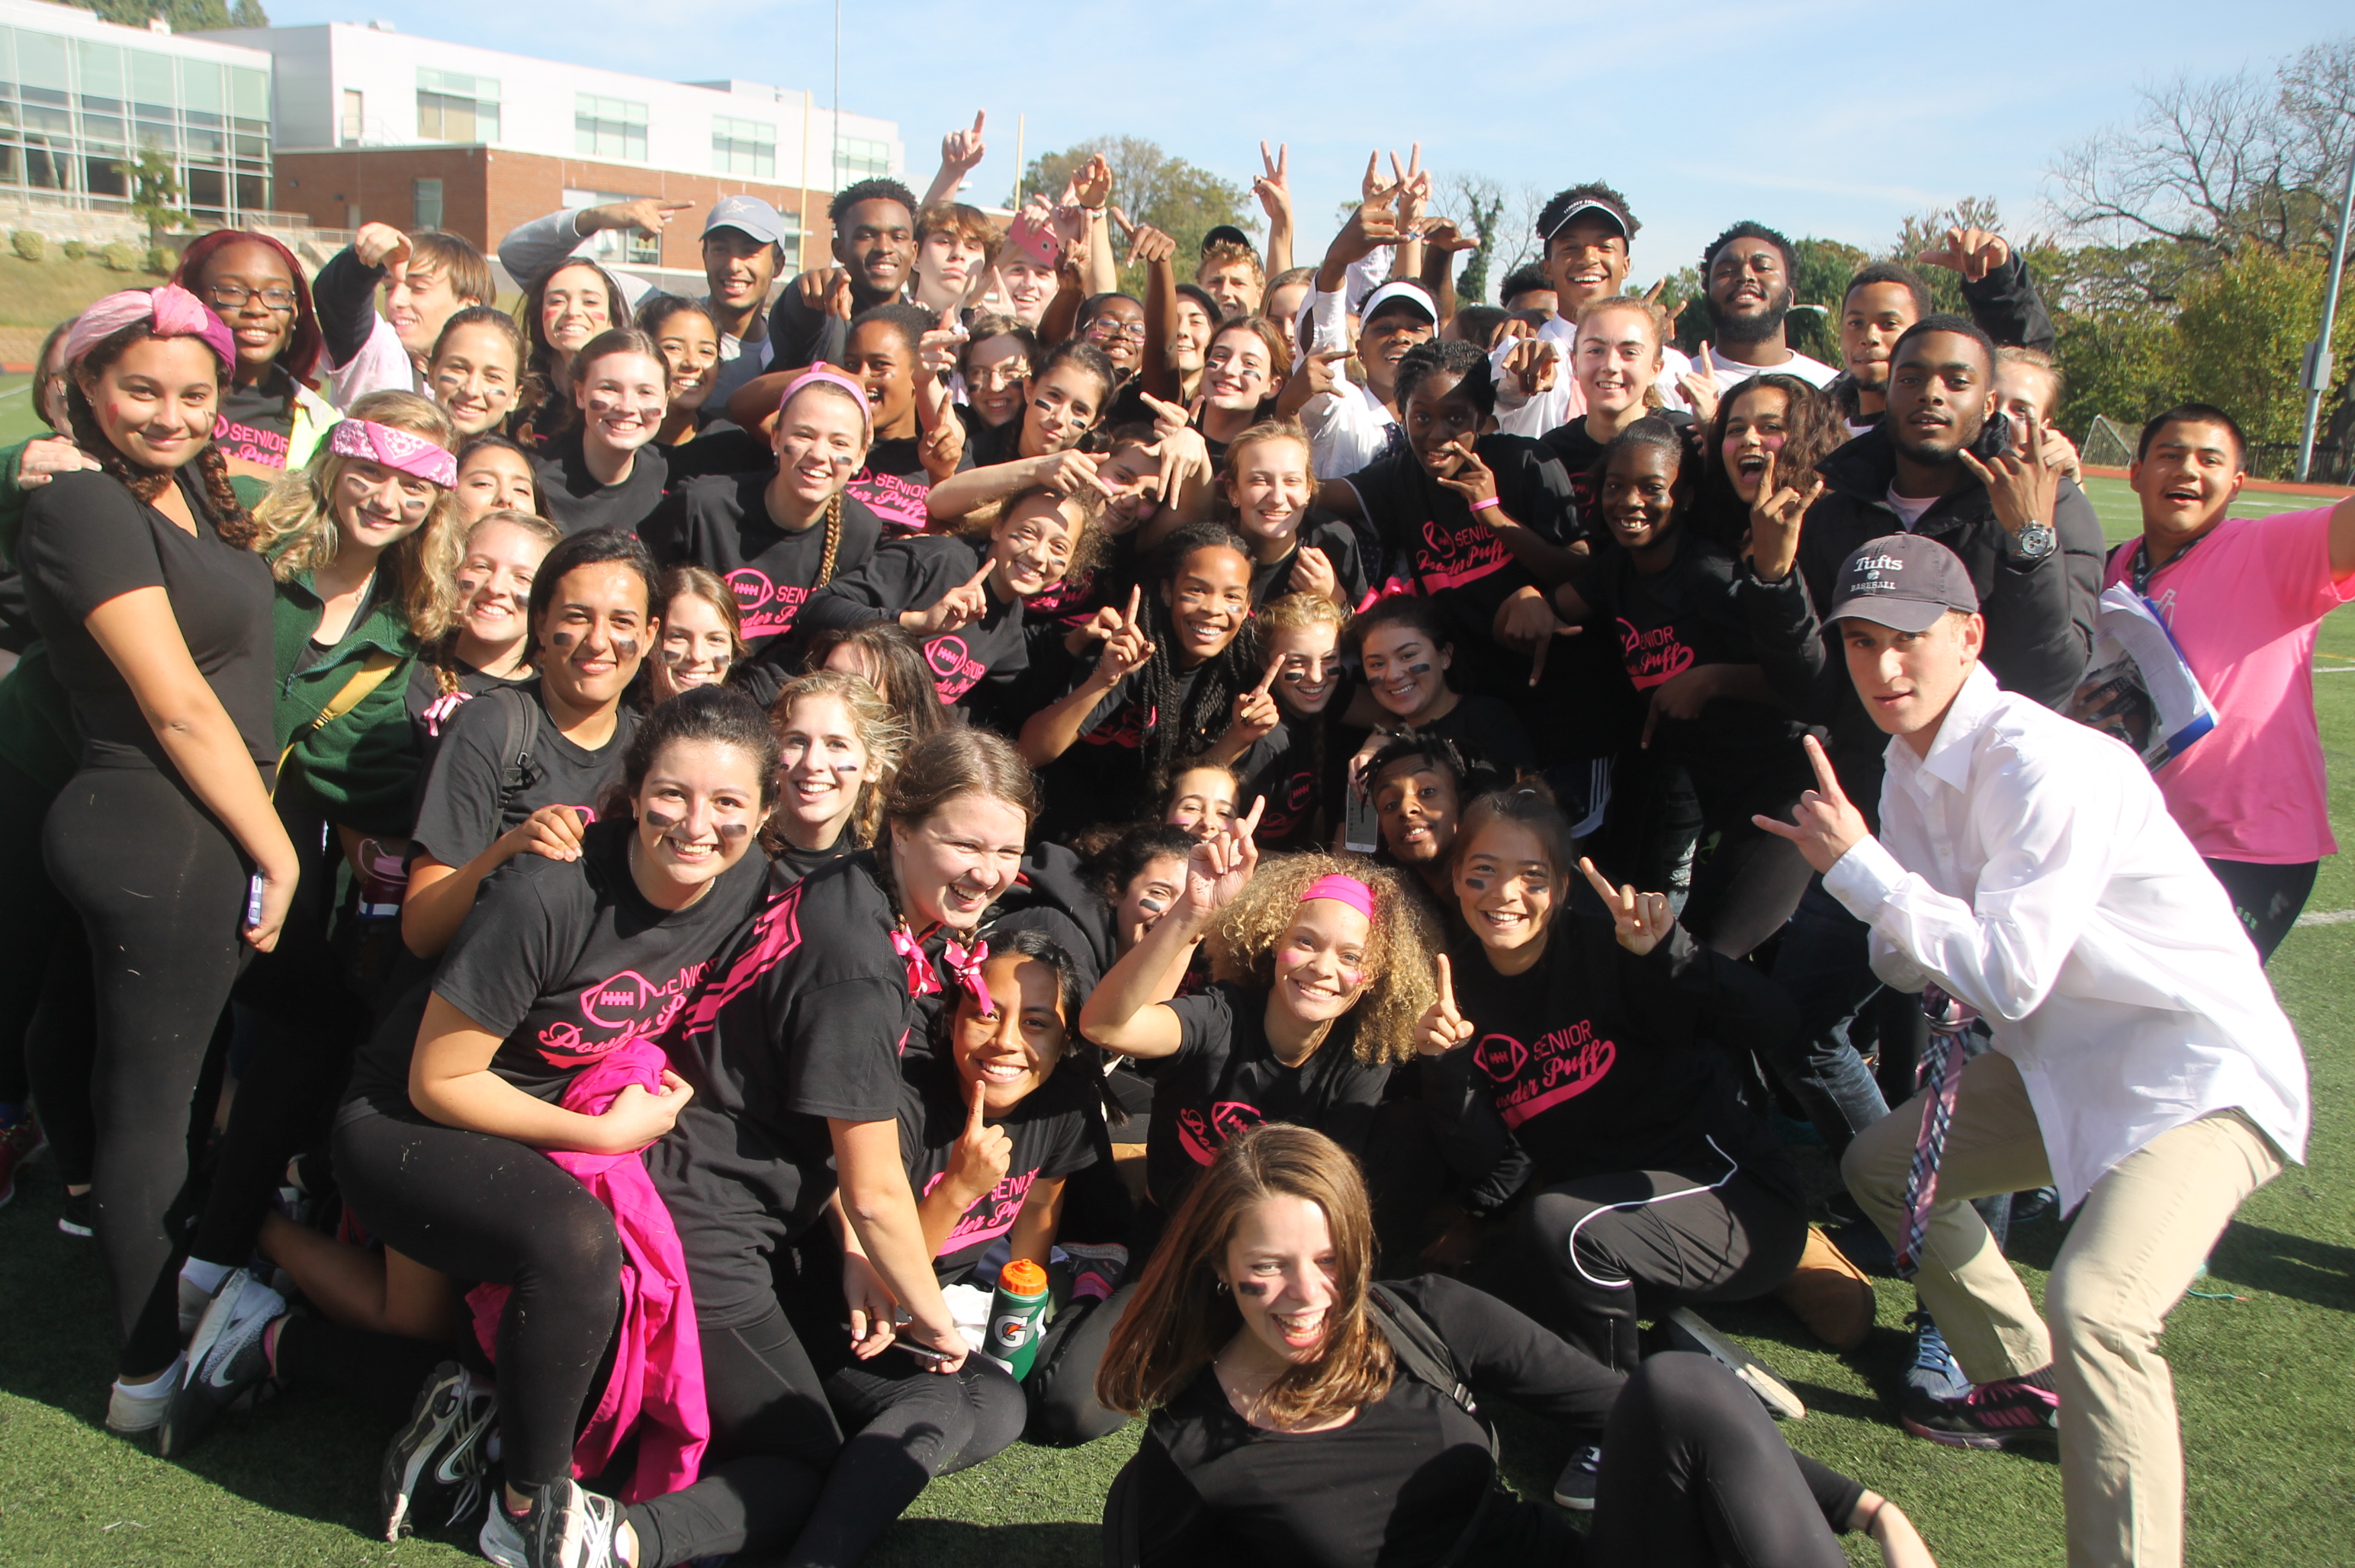 Un17ed we score: Photos from the Powderpuff game